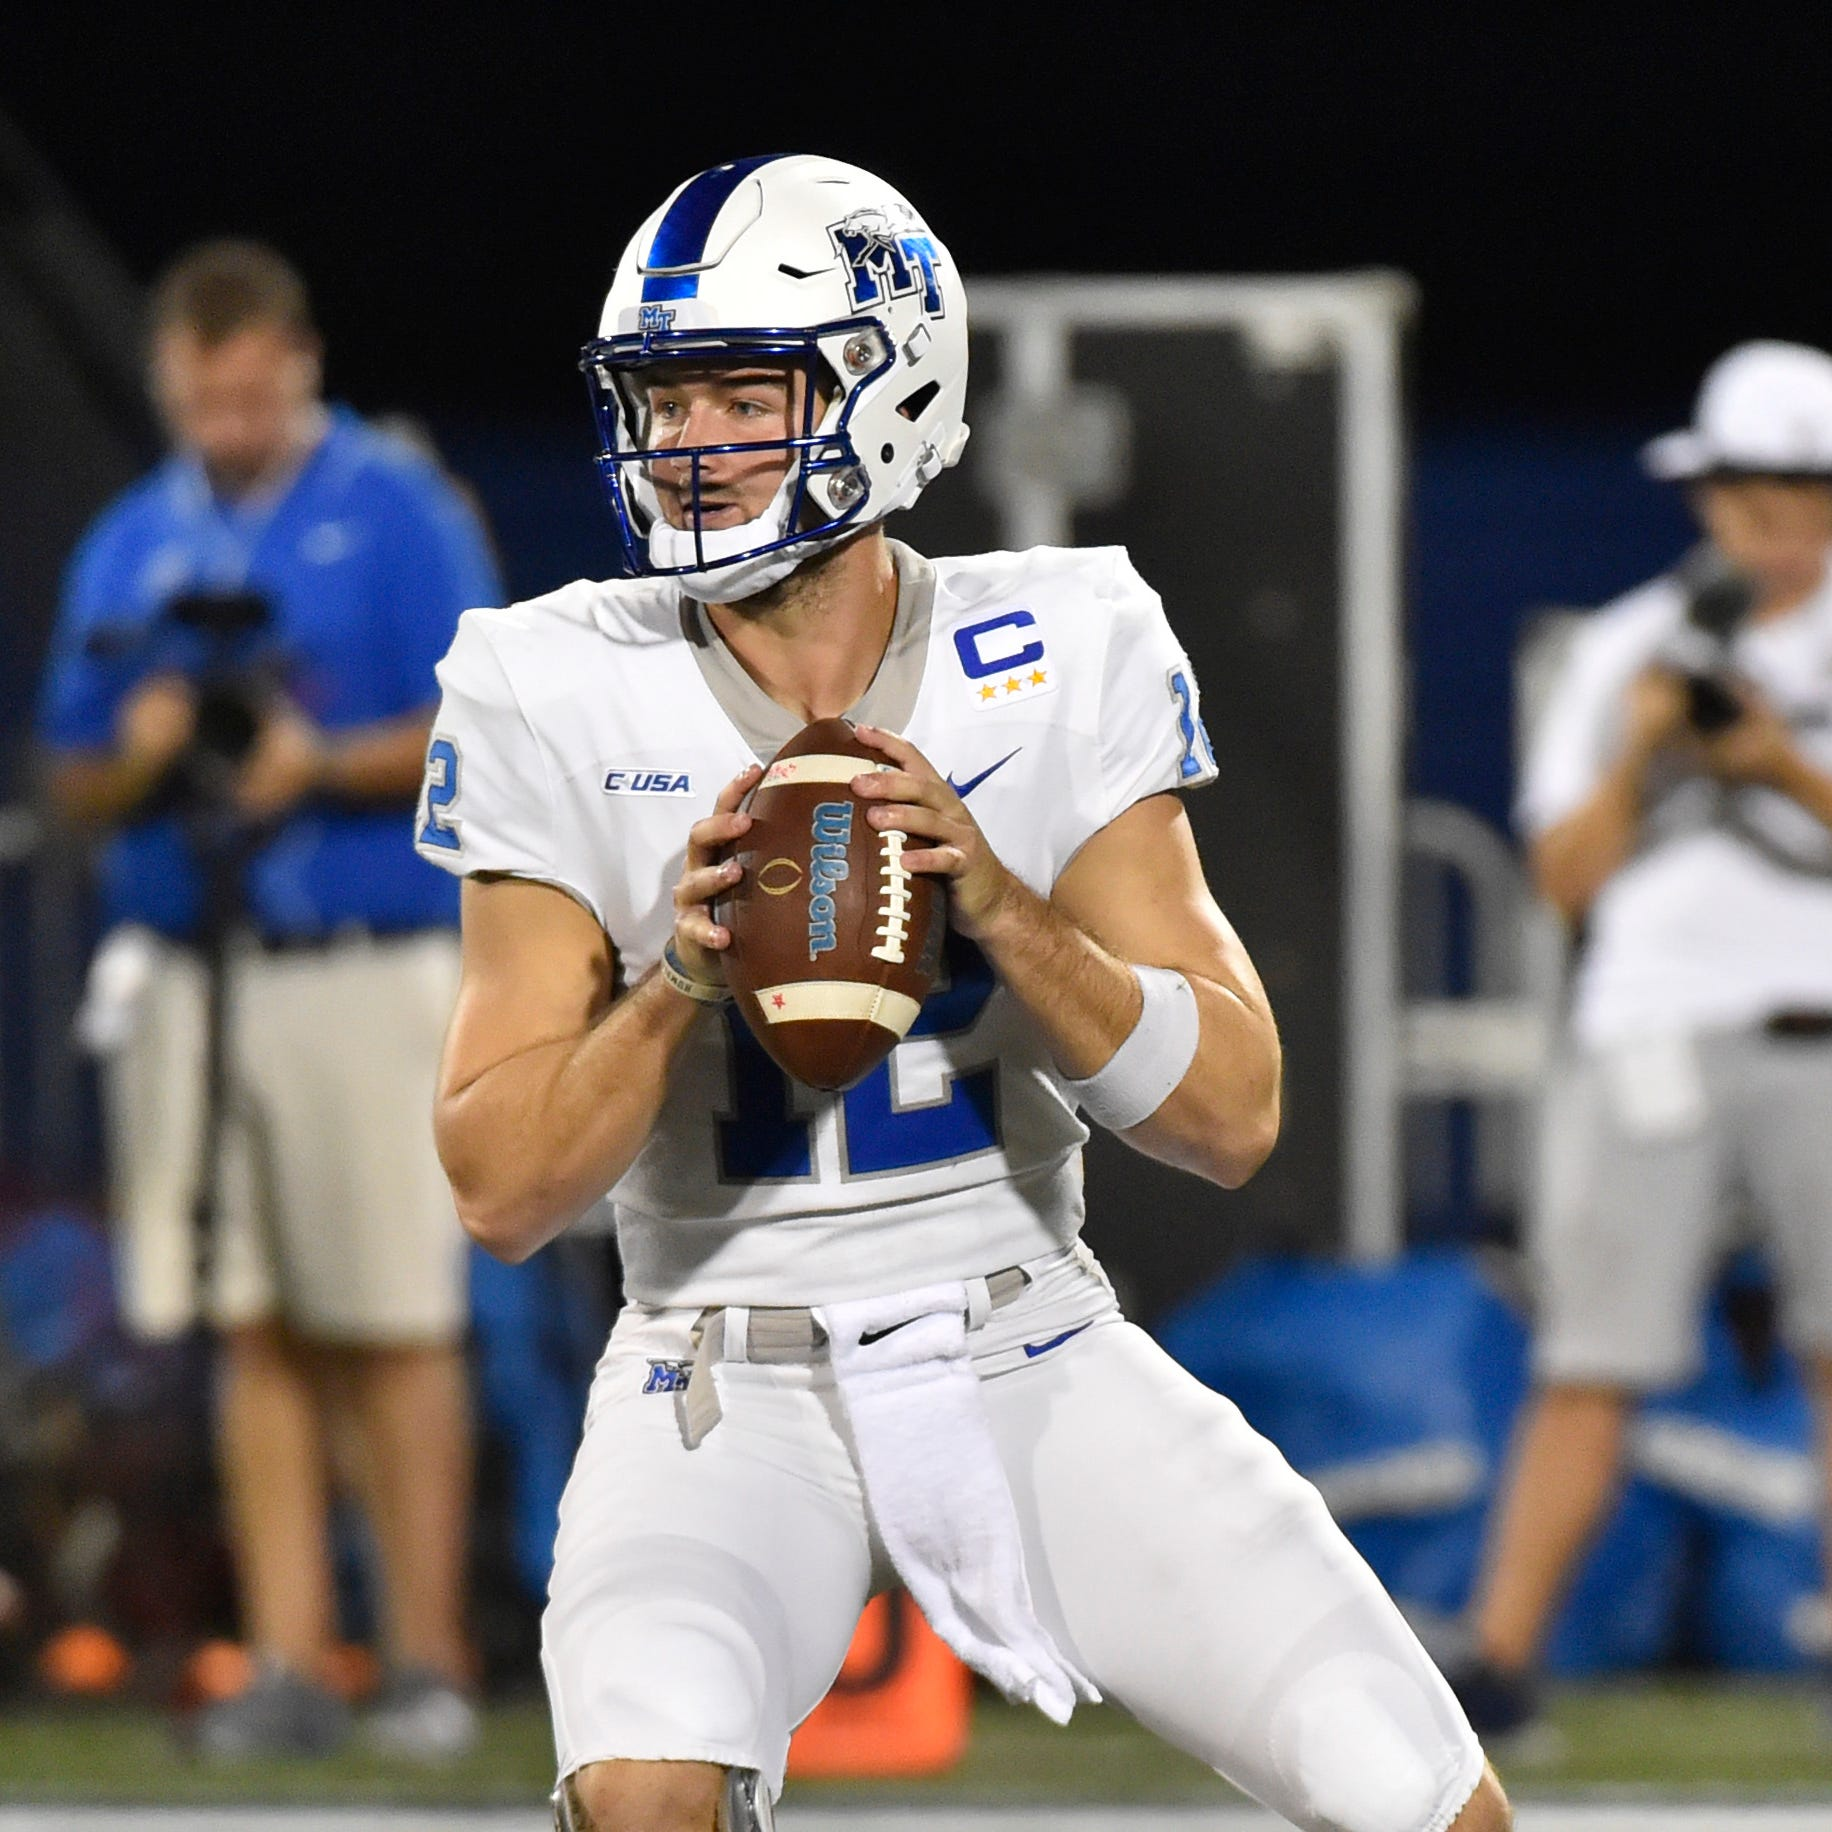 MTSU quarterback Brent Stockstill's status uncertain for Charlotte game